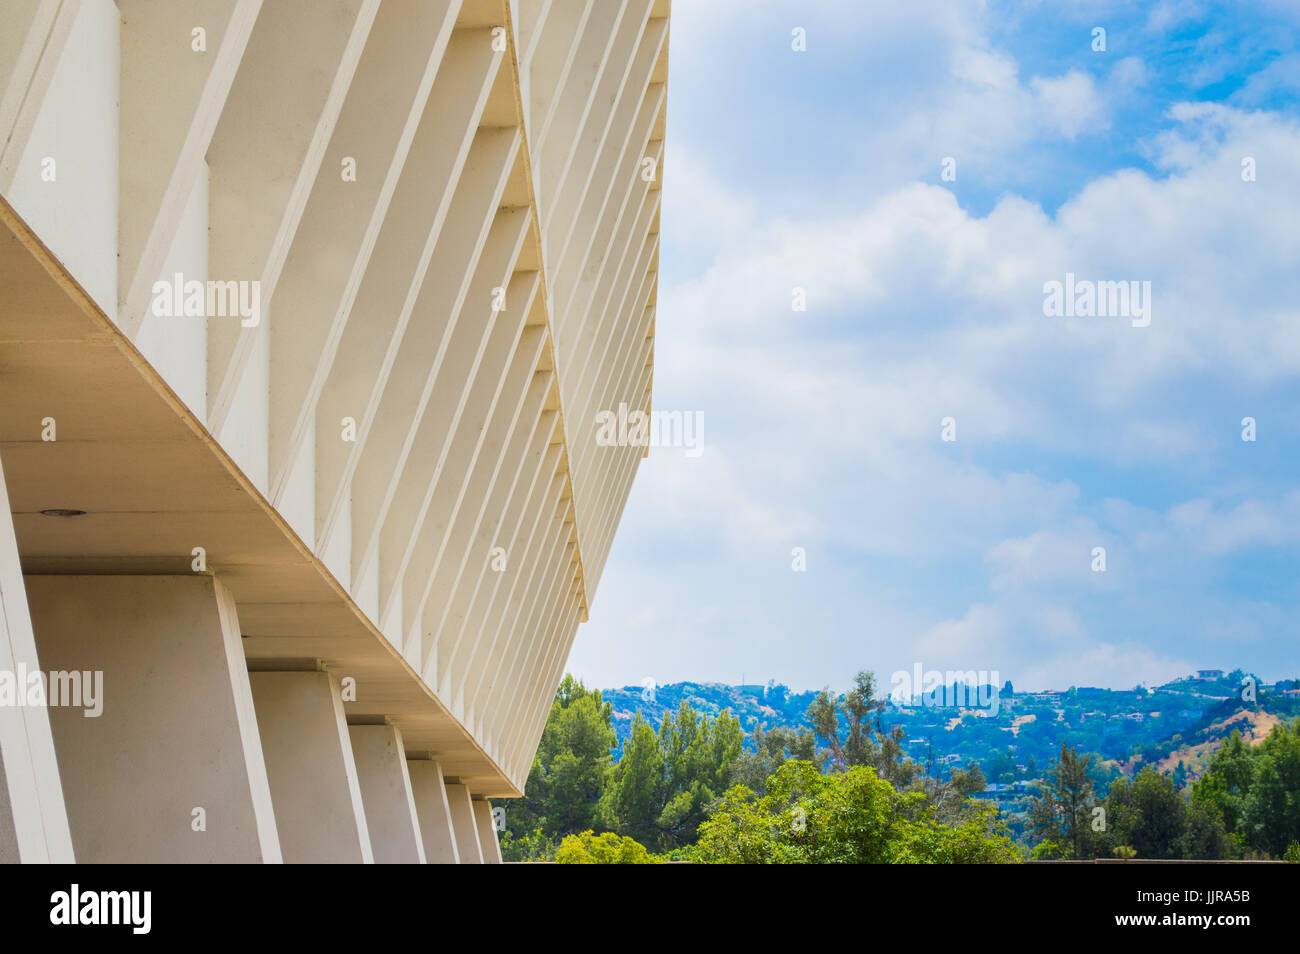 concrete Brutalist building in Los Angeles viewed from below - Stock Image